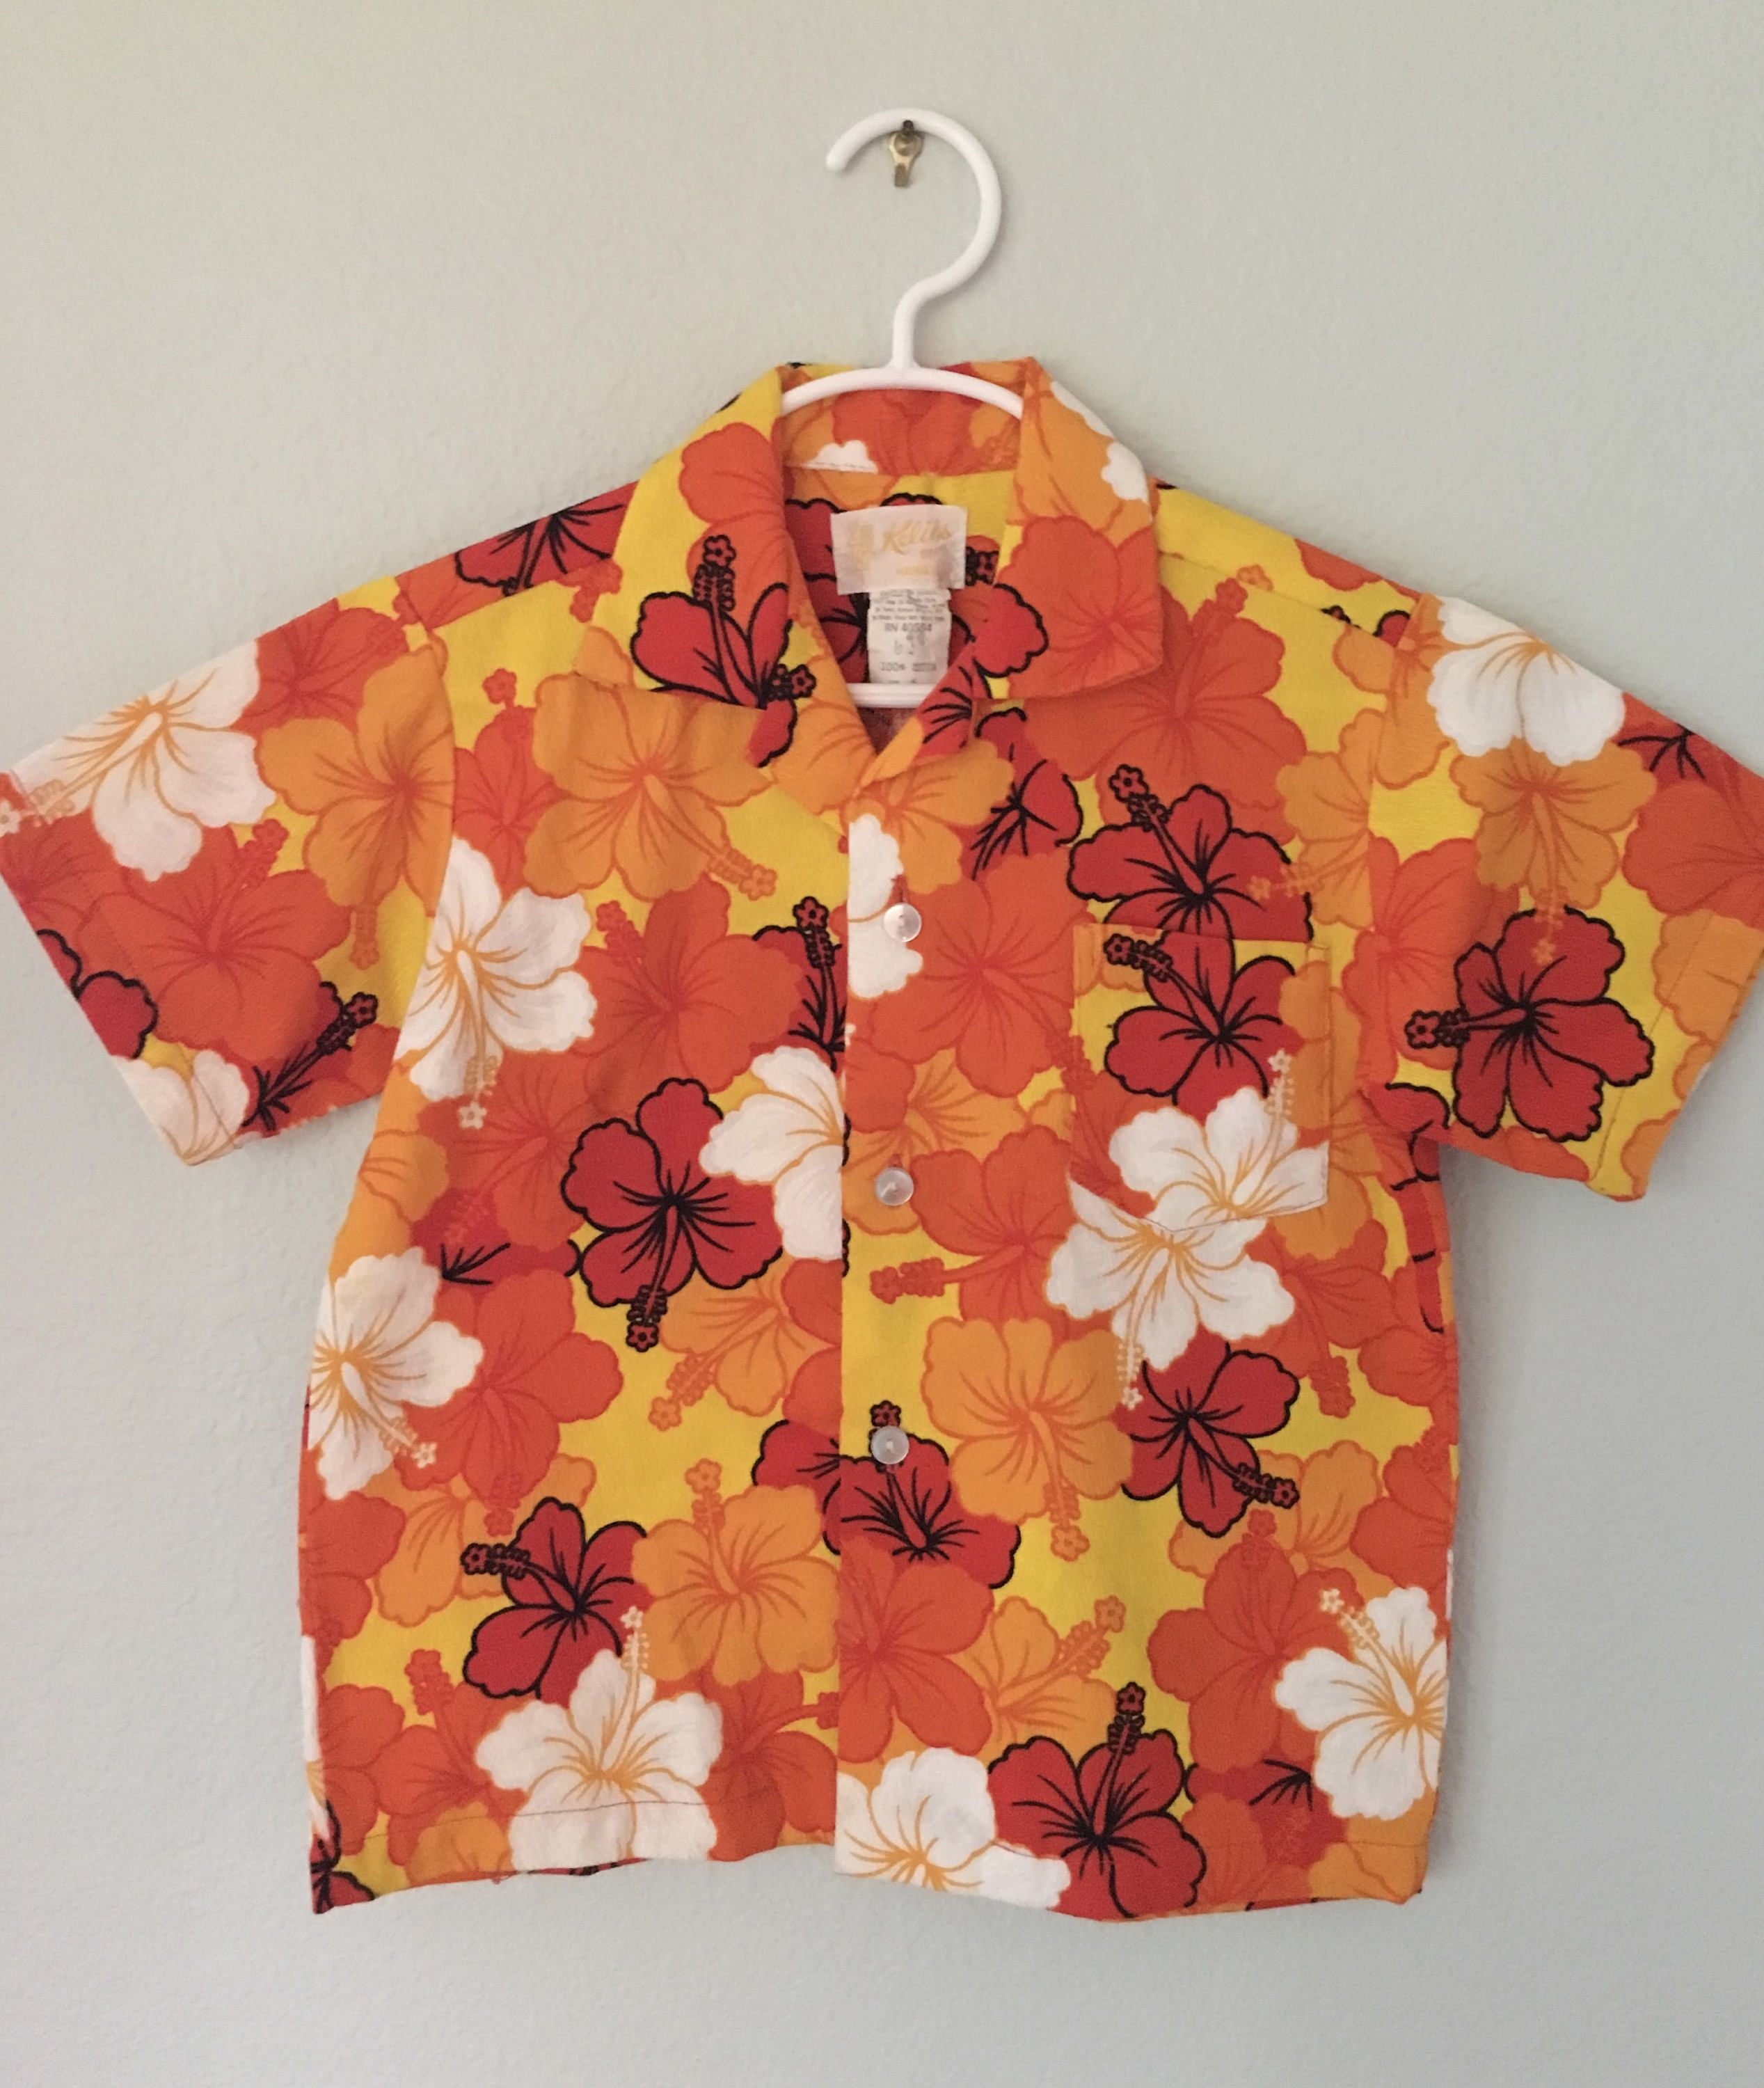 fcaedc2b9 Vintage Hawaiian Shirt, Keliis of Hawaii, Boys size 6 shirt, 70s kids  clothing, orange and yellow flowers, by VintageCrazyGirl on Etsy